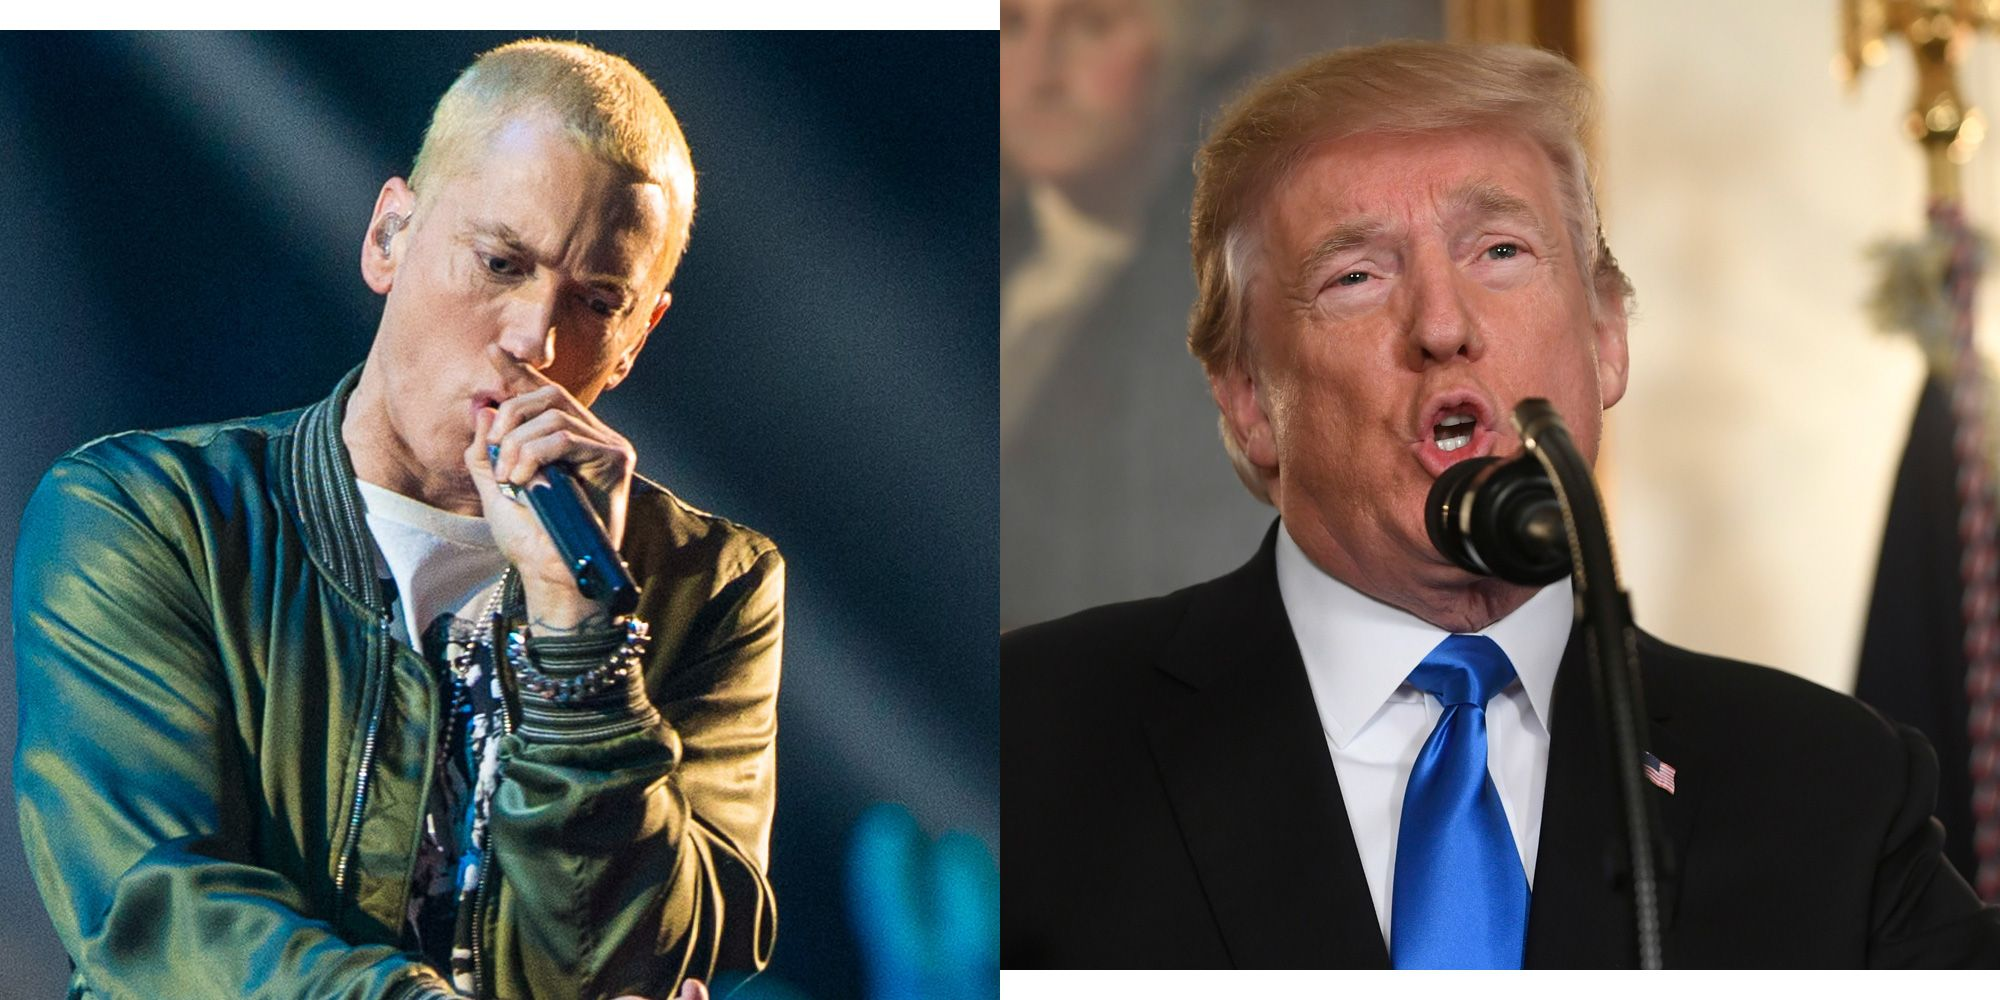 Eminem Continues His Verbal Assault on Donald Trump in a New Interview With Elton John